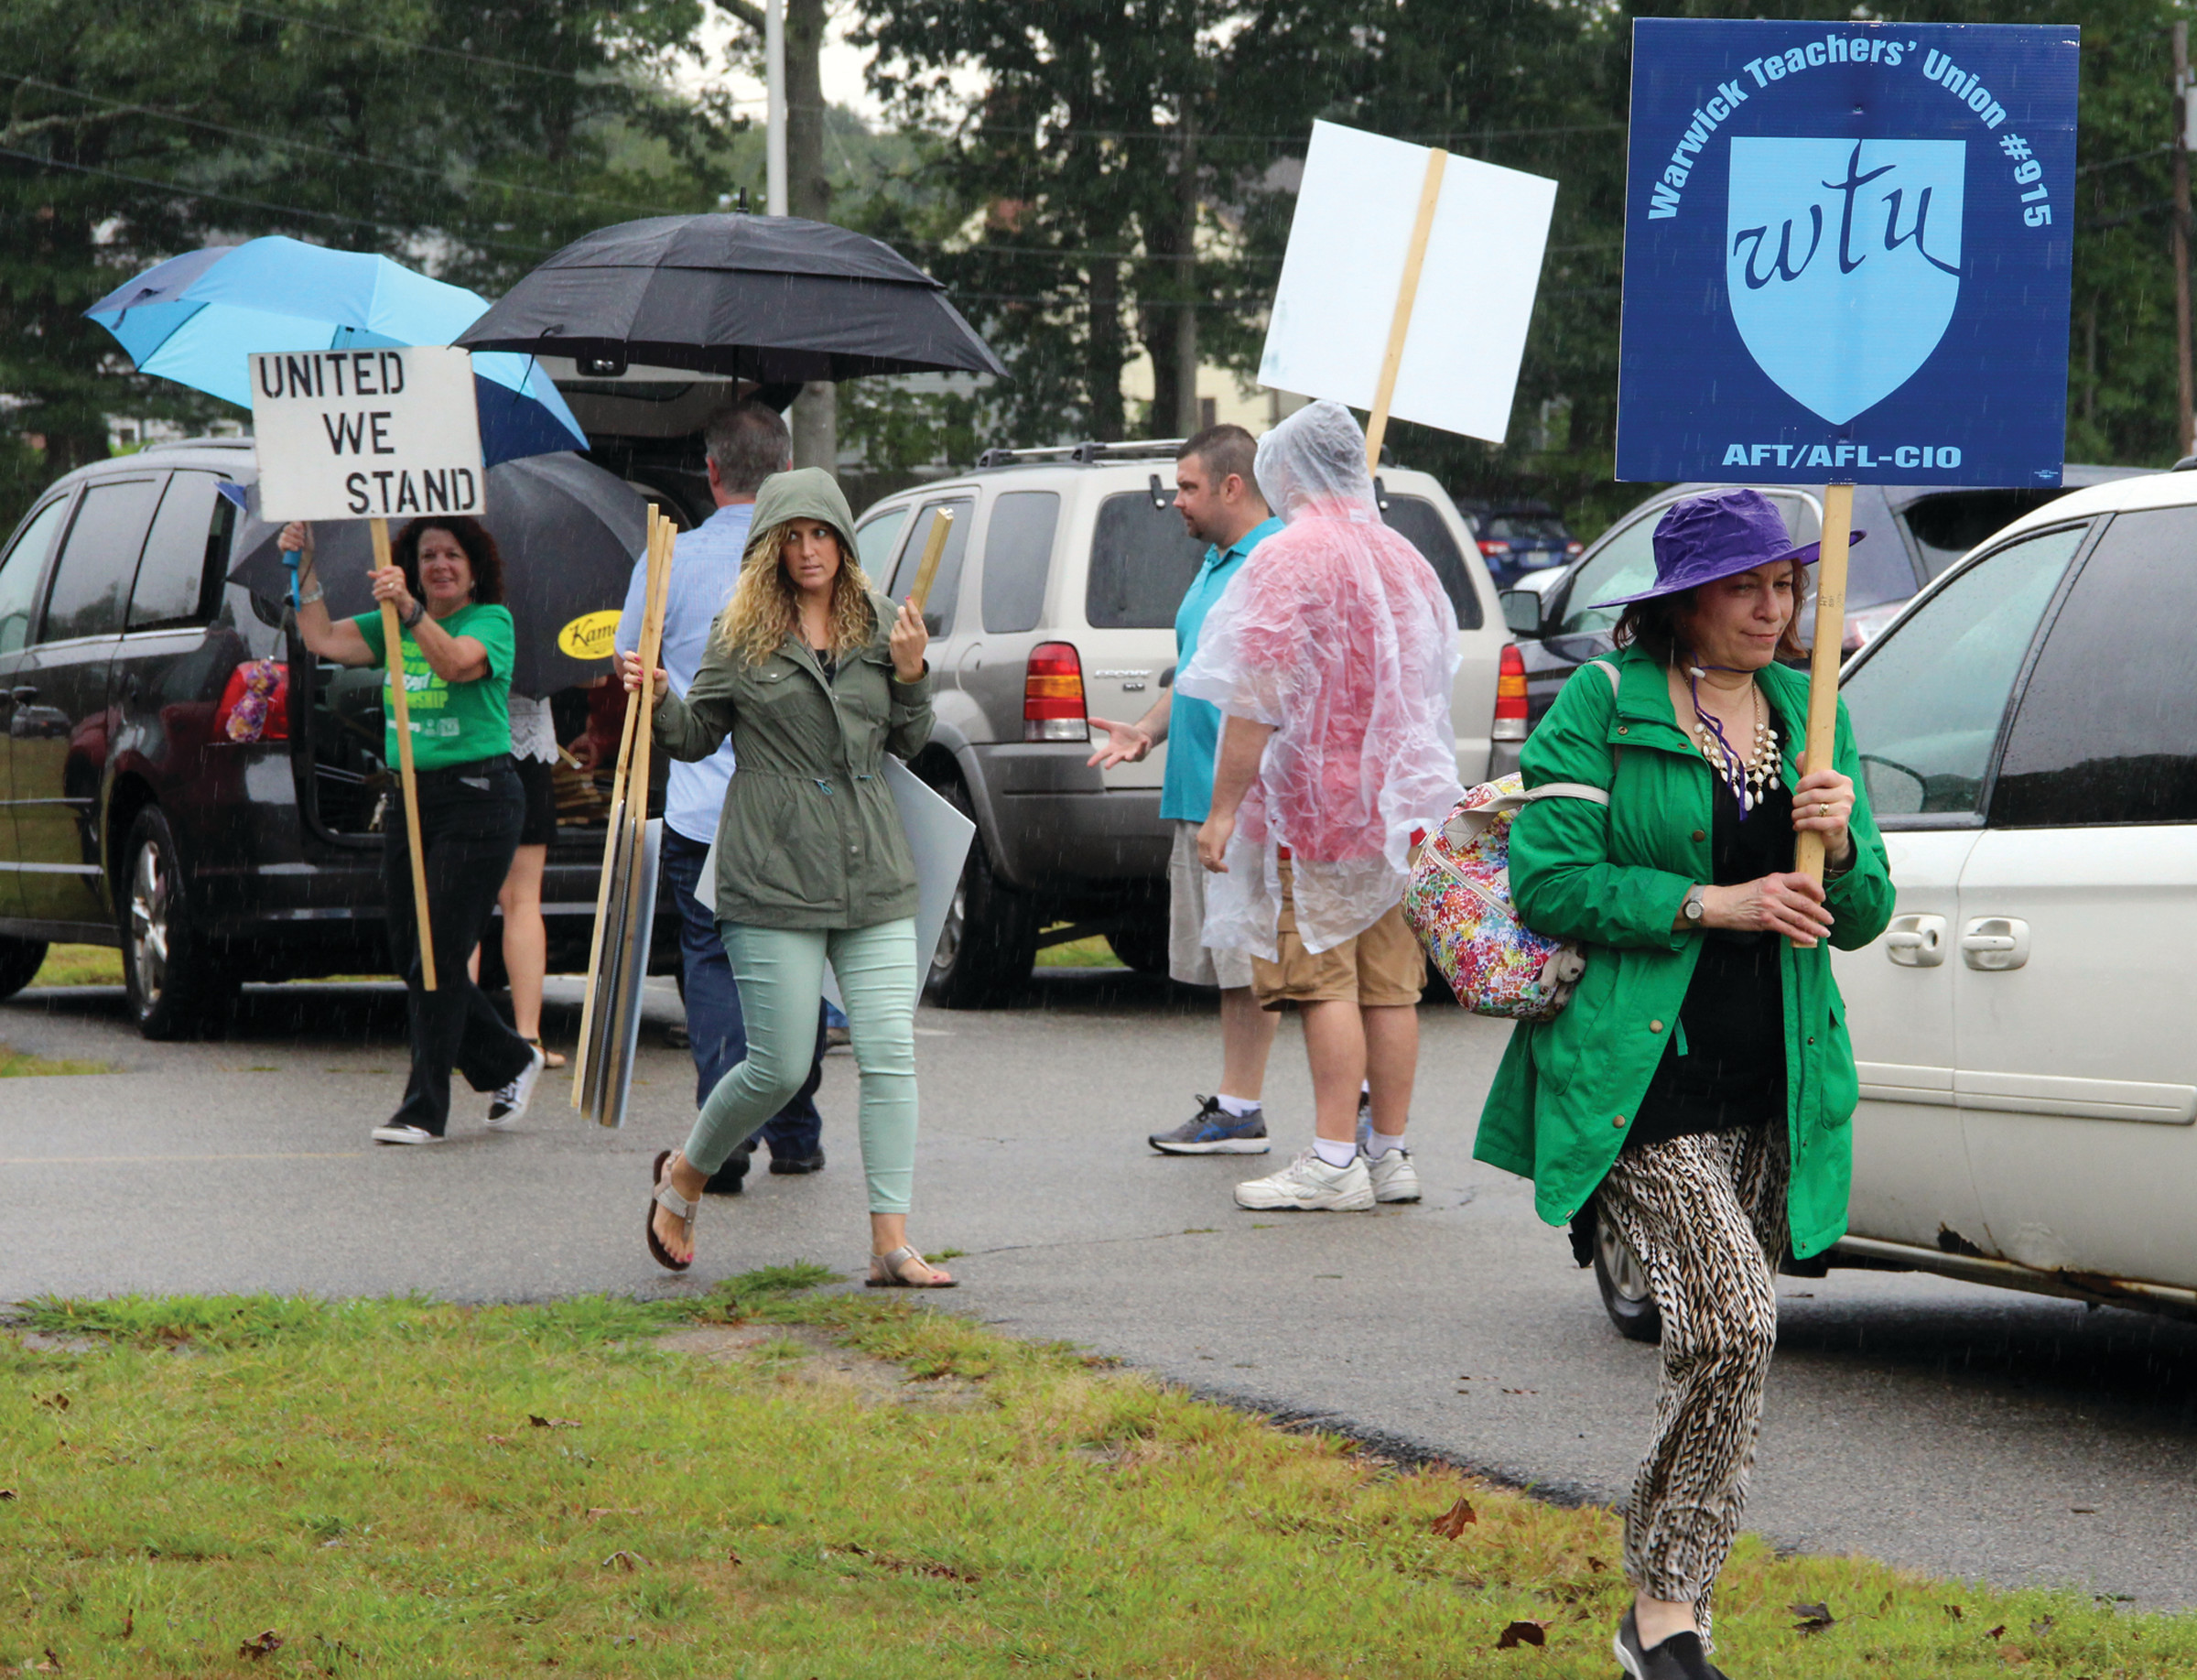 DEMANDS UNDERLINED: The Warwick Teacher's Union has reiterated their unhappiness with the school committee as they enter a third year without a teaching contract. Union president Darlene Netcoh said that a strike was not out of the question. Here, teachers picket outside of Pilgrim High School following the first full day of school.